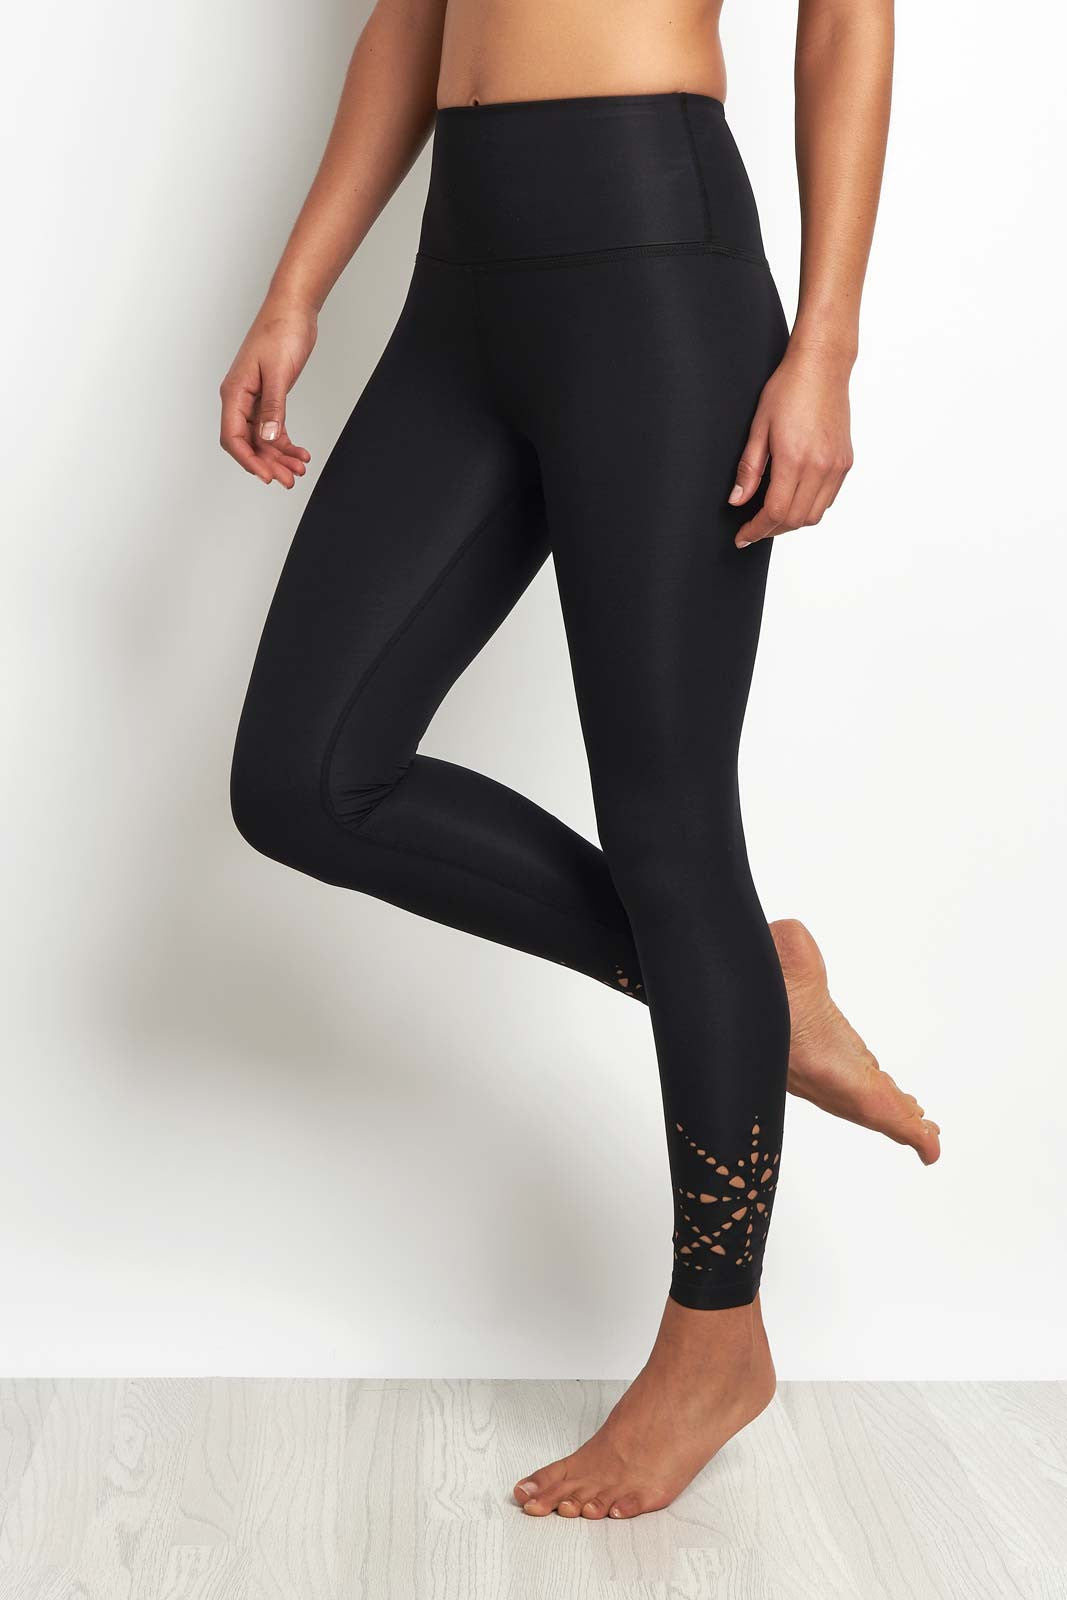 Beyond Yoga Knit Down Midi High Waisted Legging Black image 1 - The Sports Edit